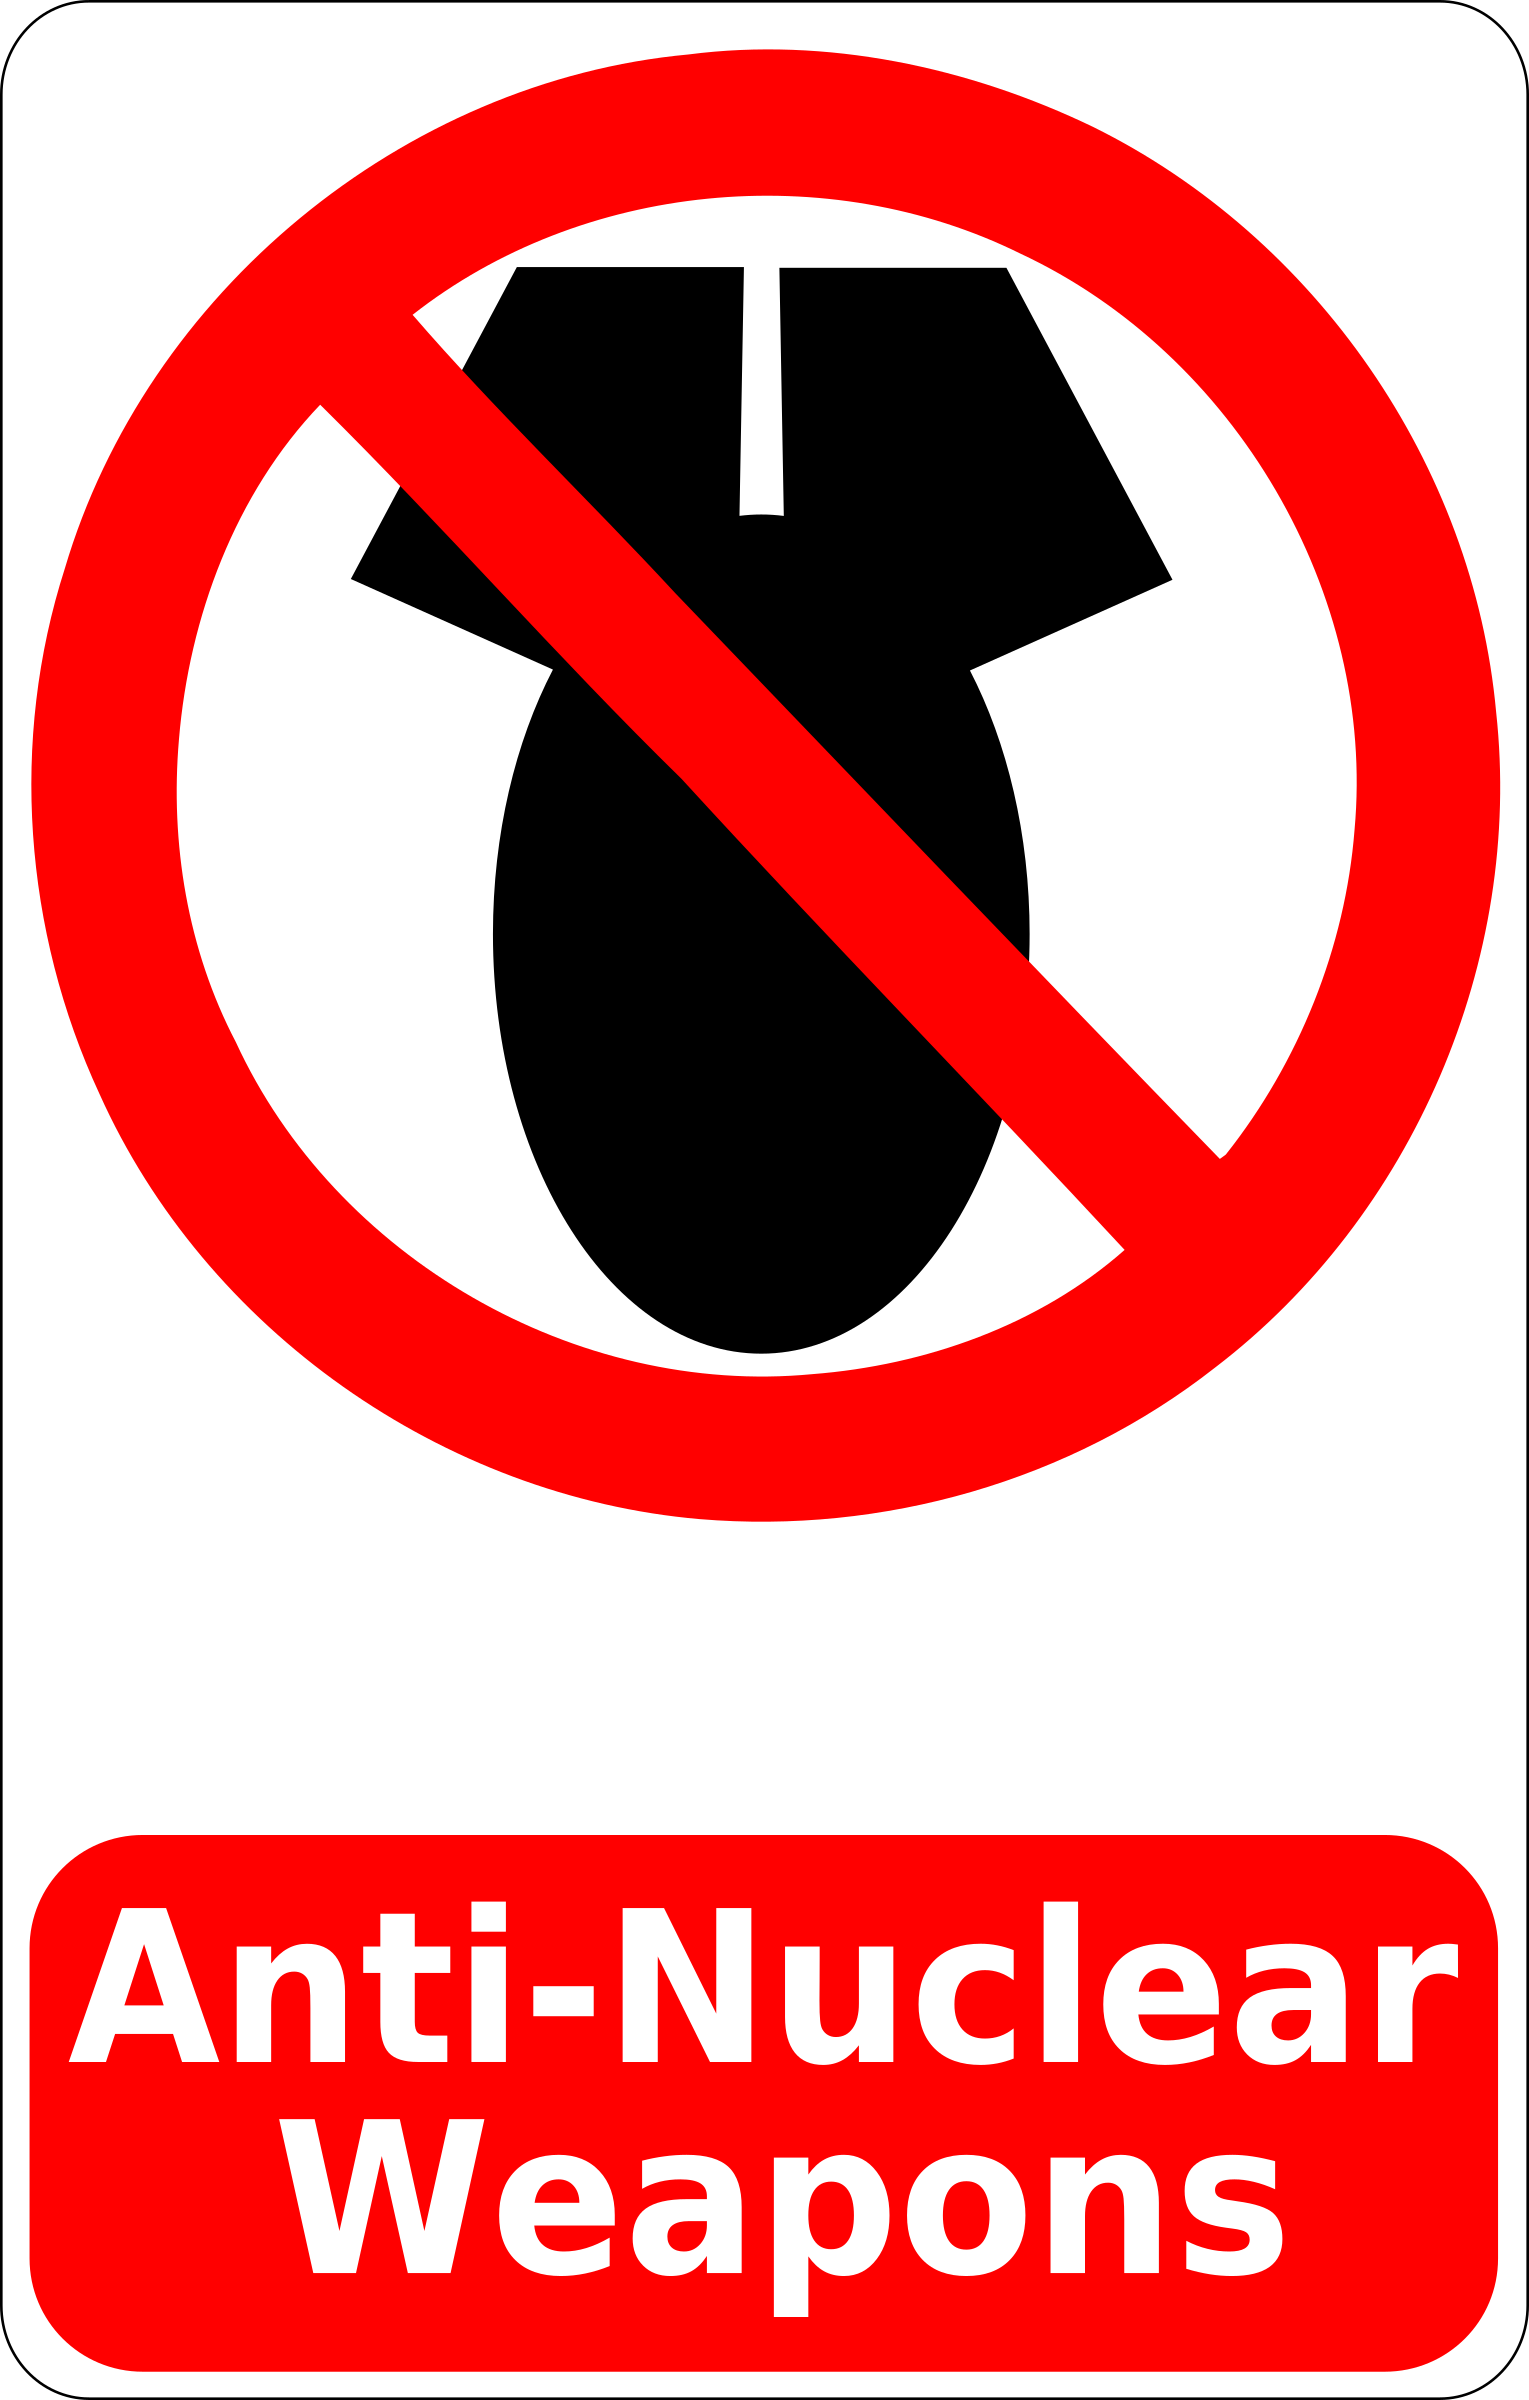 Anti-Nuclear Weapons Sign by cibo00